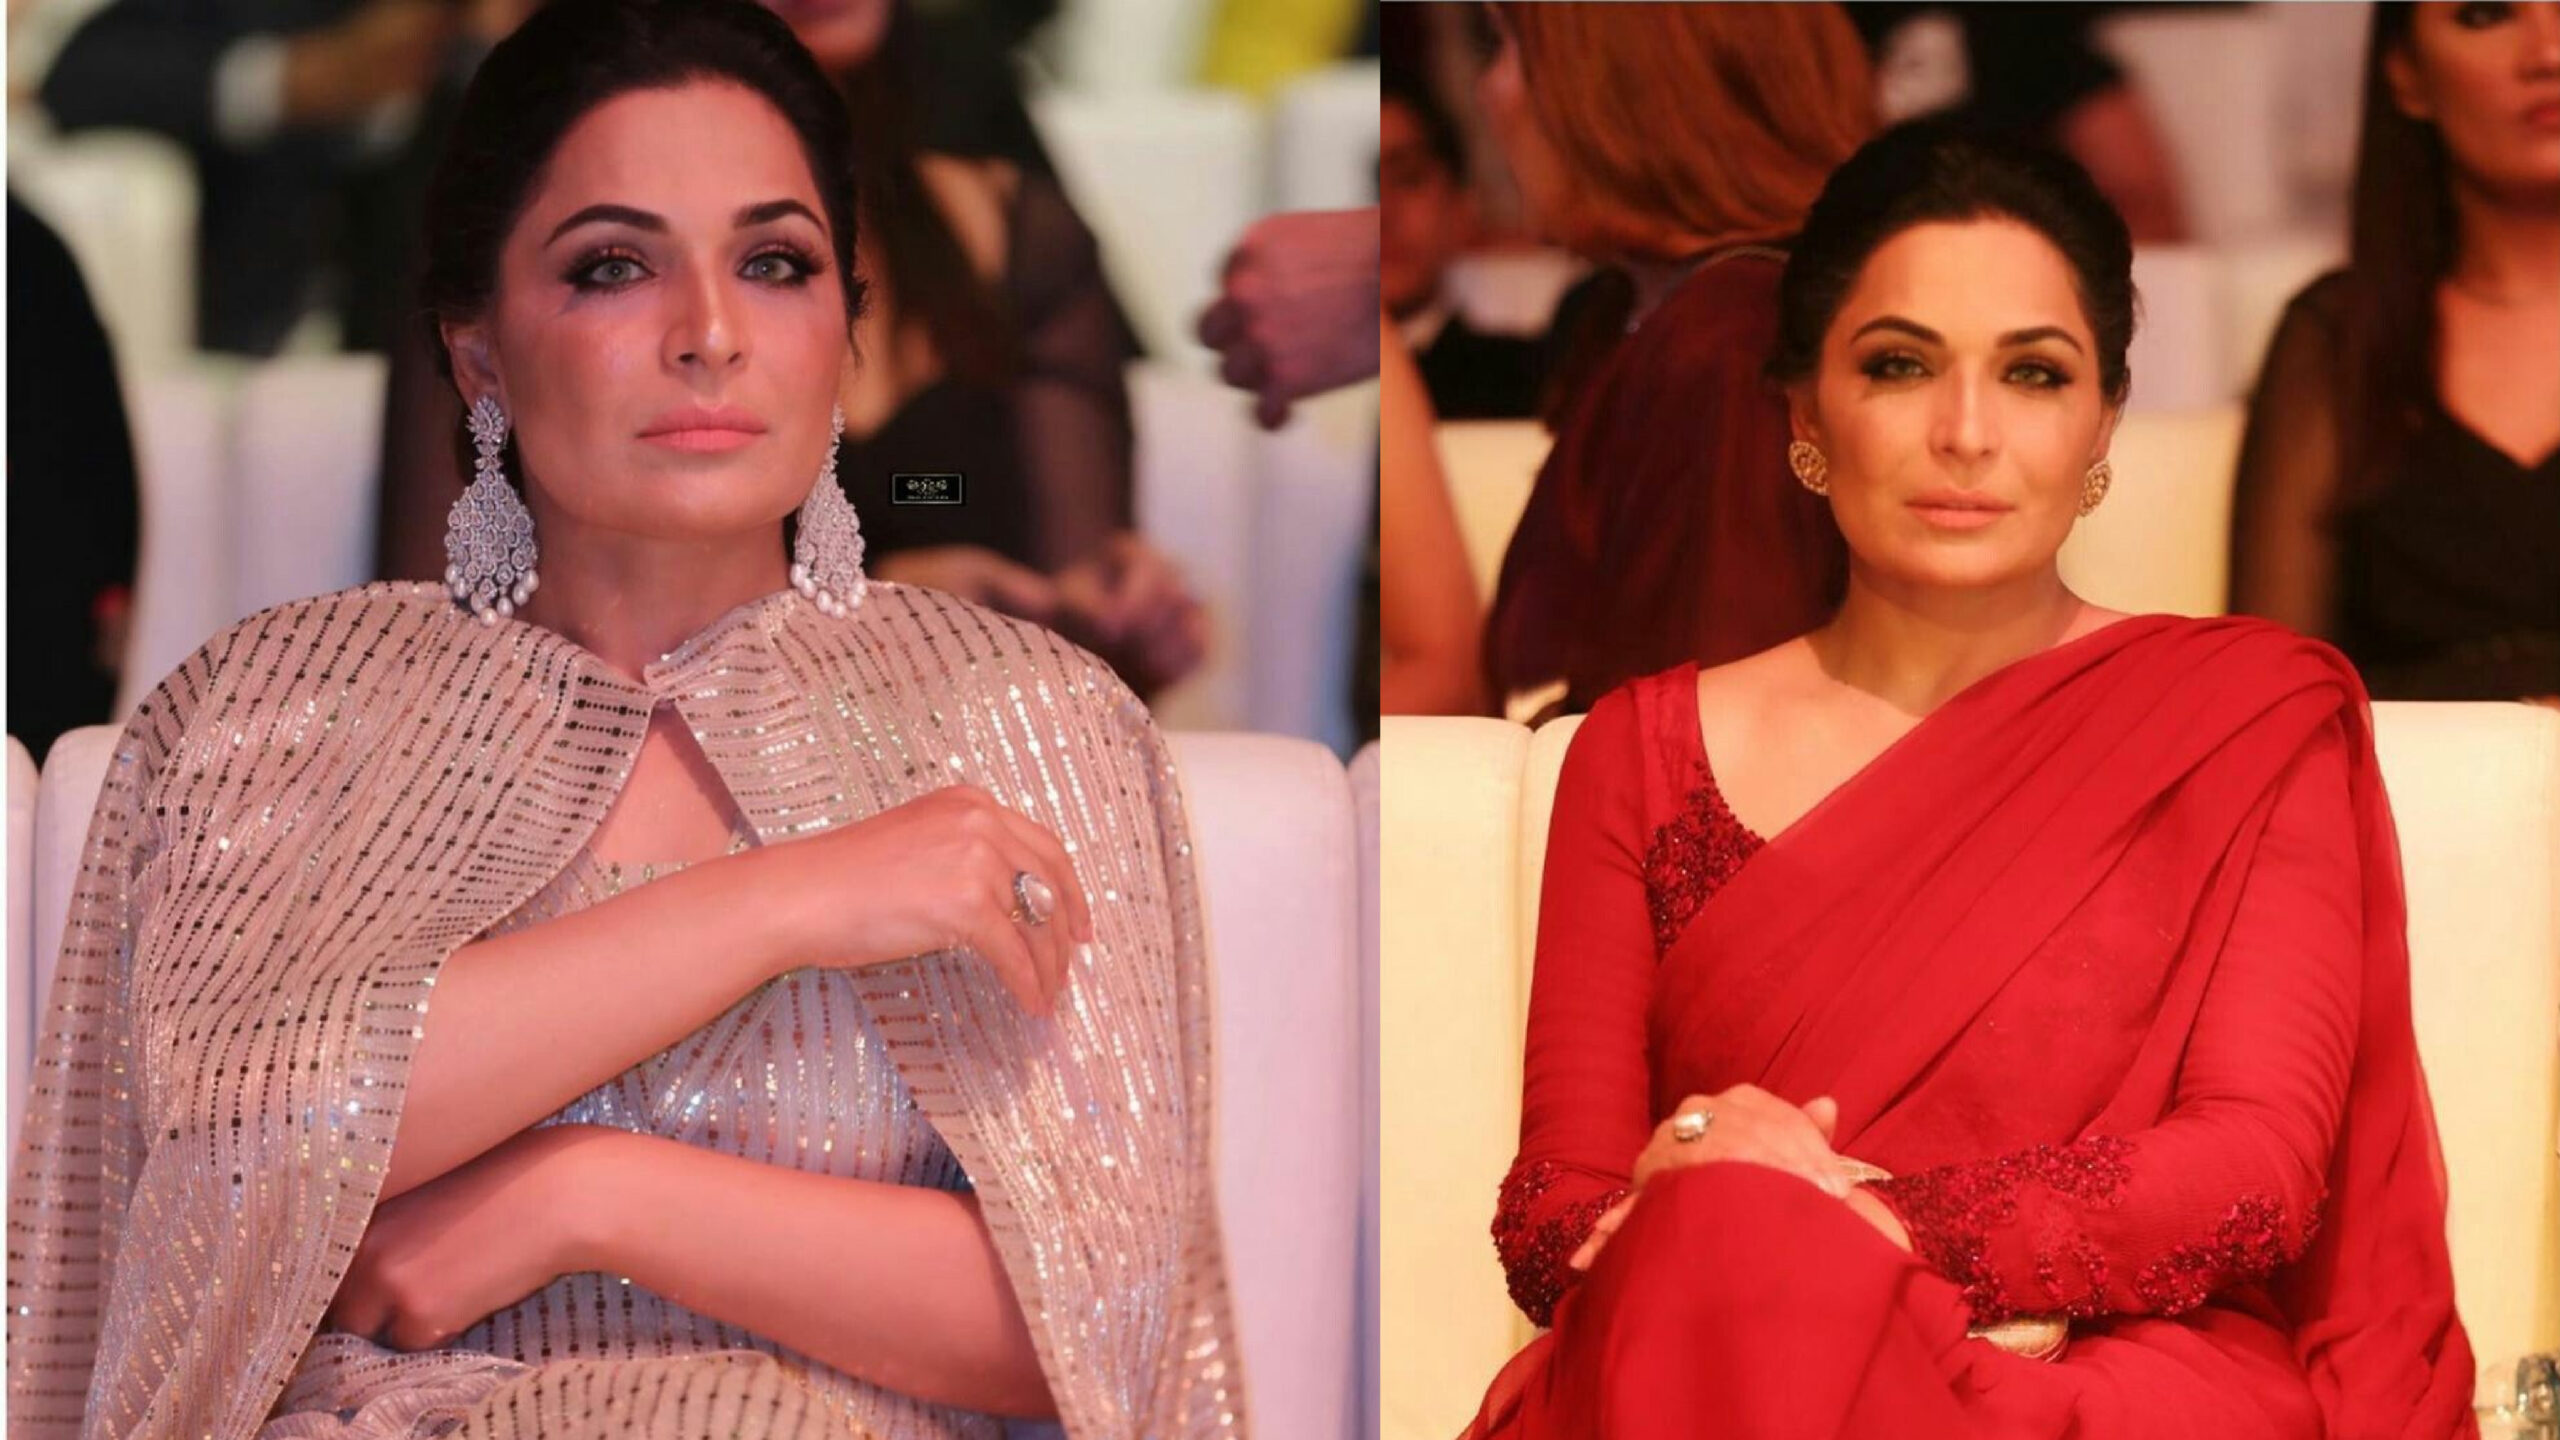 Showbiz star Meera released from mental hospital, ordered to leave US within 48 hours